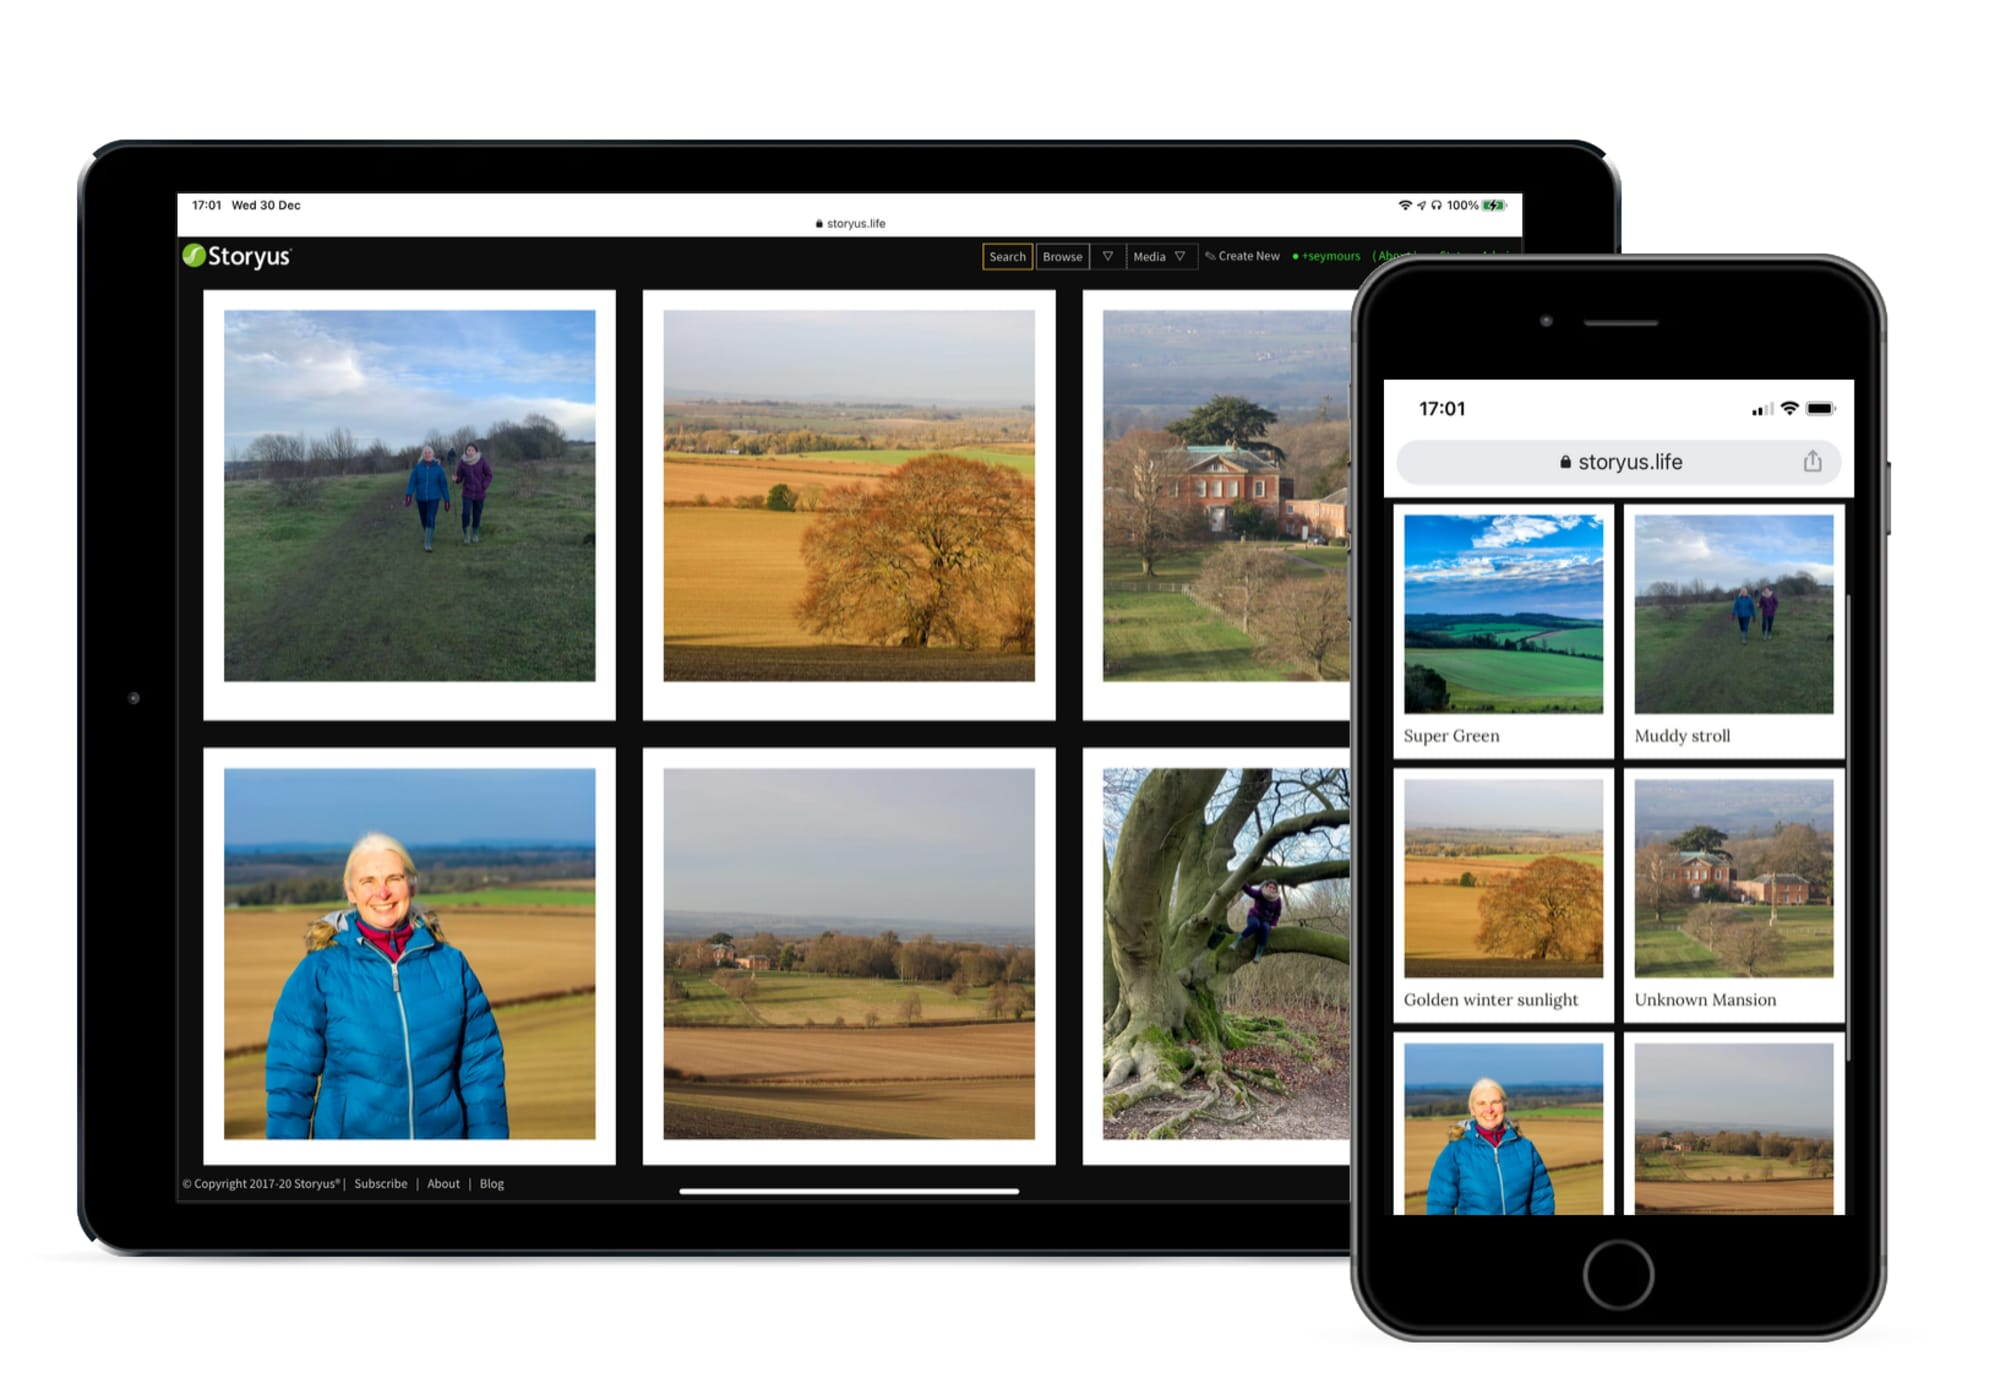 New Polaroid gallery - looking great on screens both big and small